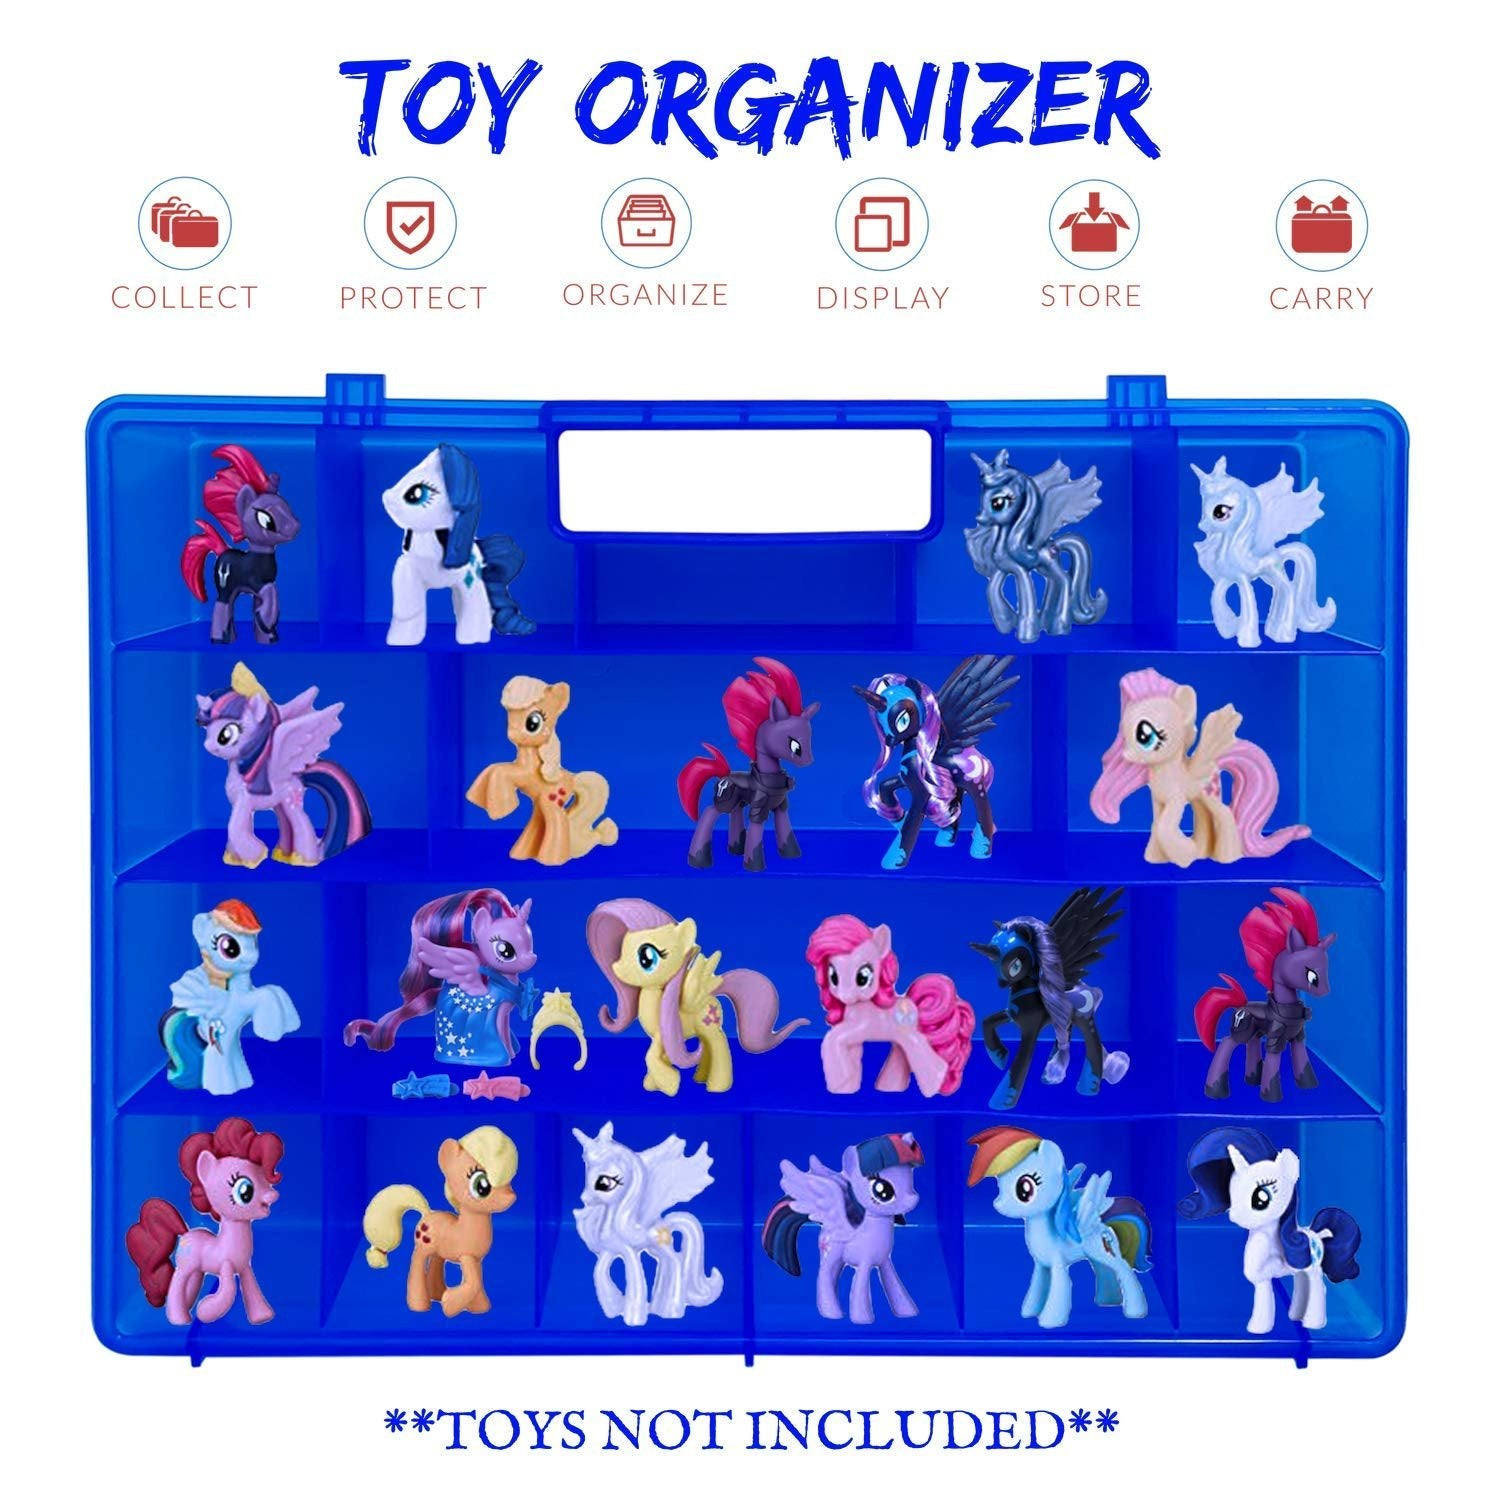 Life Made Better, Toy & Accessory Holder, Kid Figurines Display & Portable Toy Case, Compatible with My Little Pony Mini Toy Figurines, Toy Storage Organizer